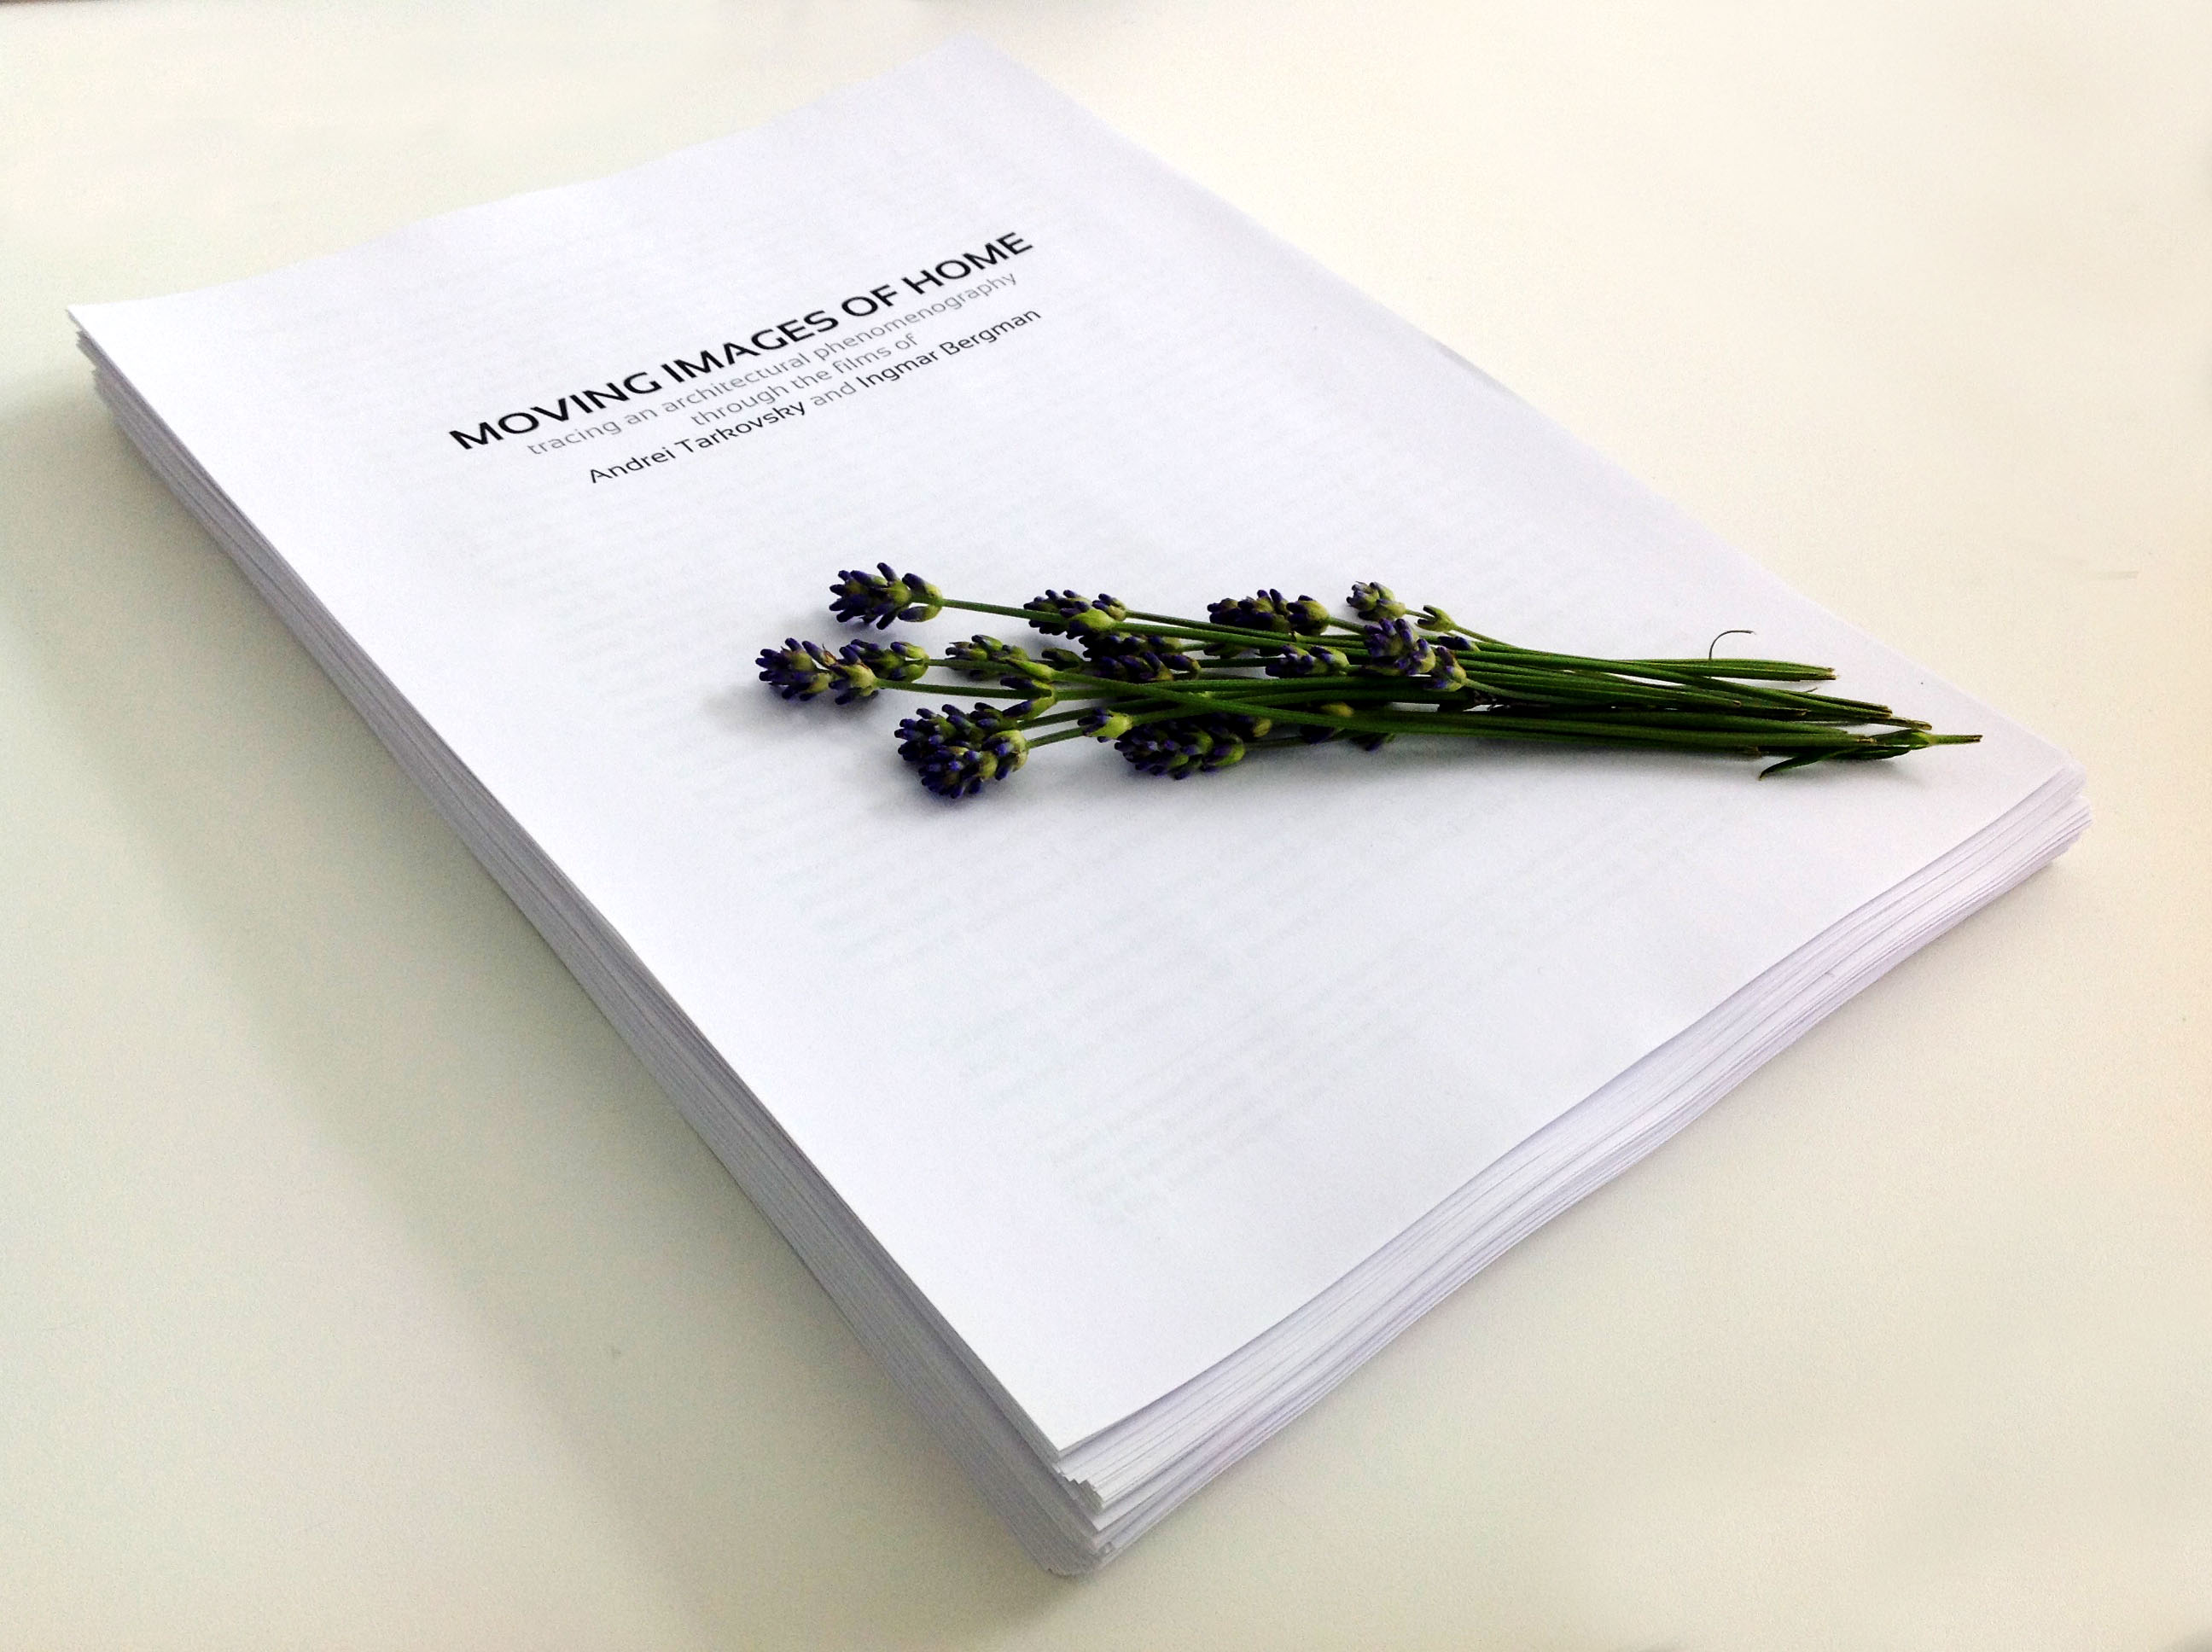 download complete thesis